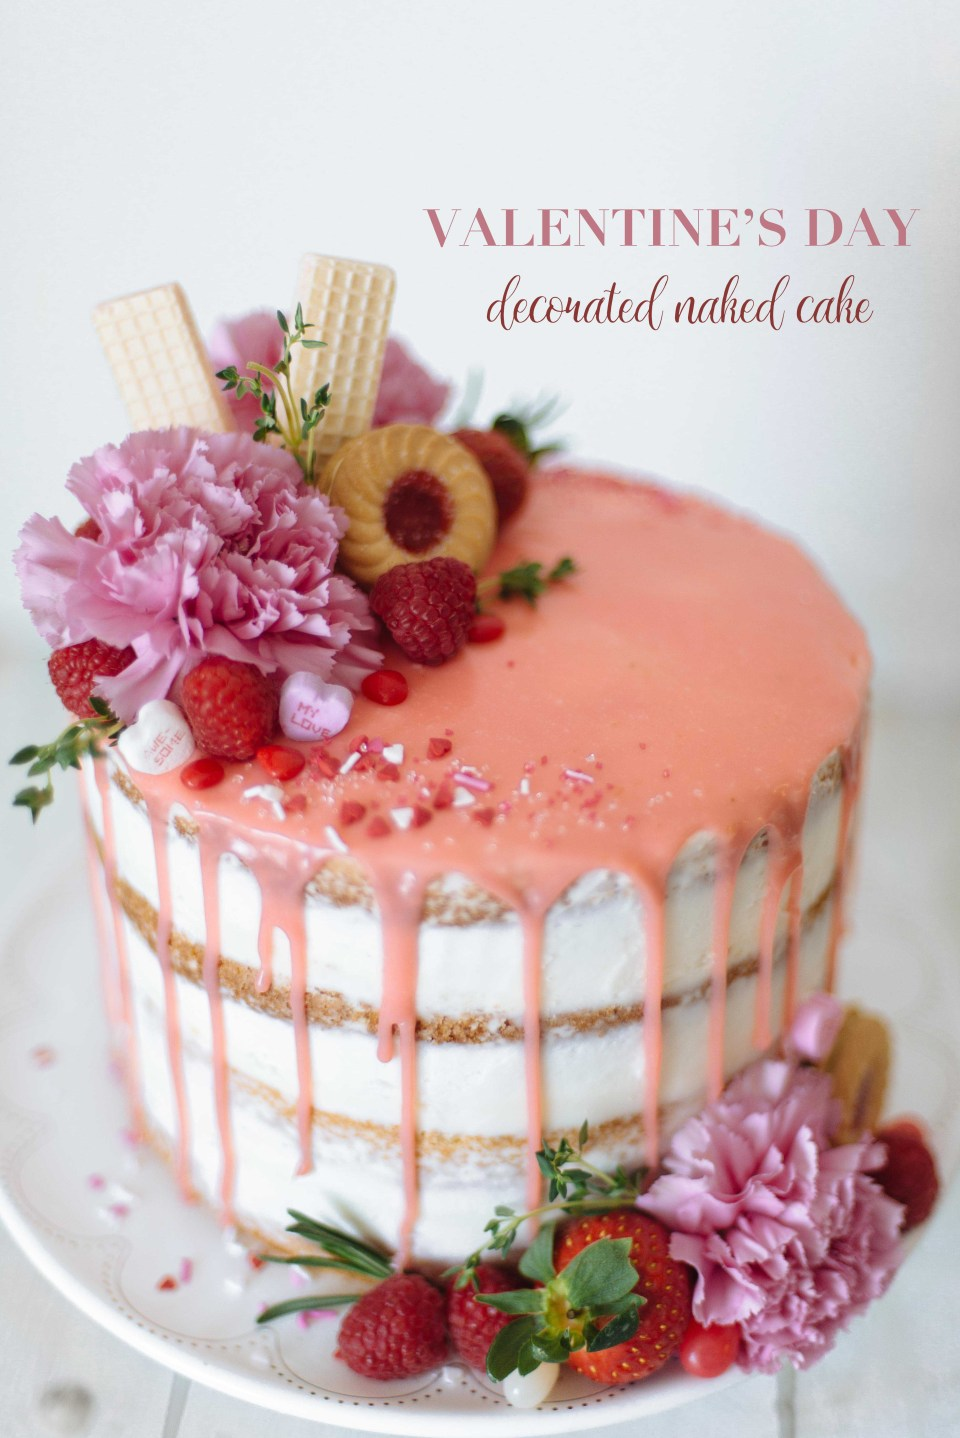 Beautiful Naked Cake for Valentine's Day | Naked Wedding Cake | DIY Naked Cake | Valentine's Day Treats